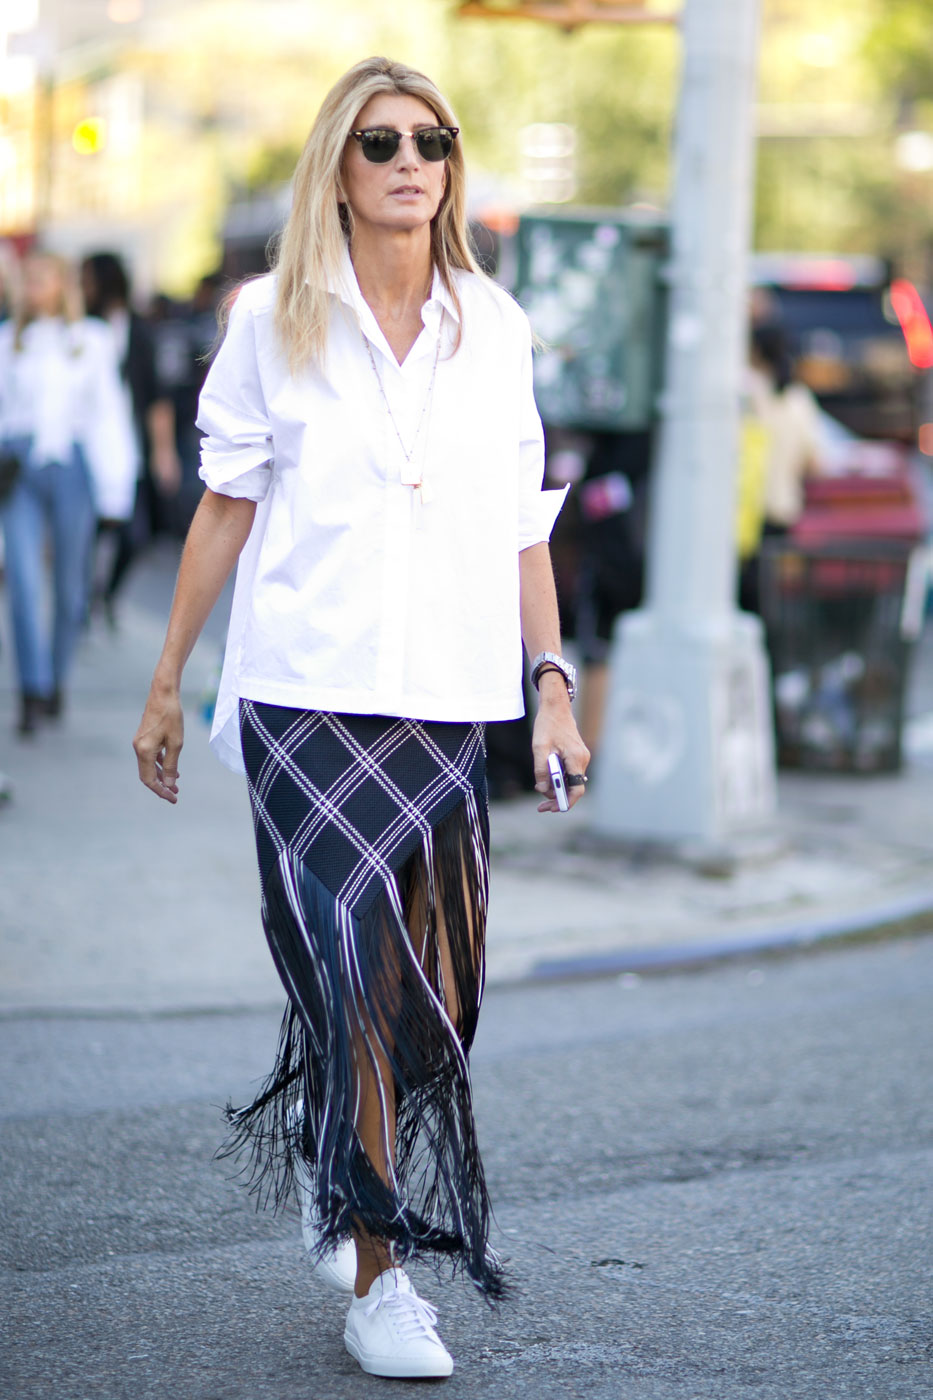 Style Street Pointu Street Style Les Filles Cool